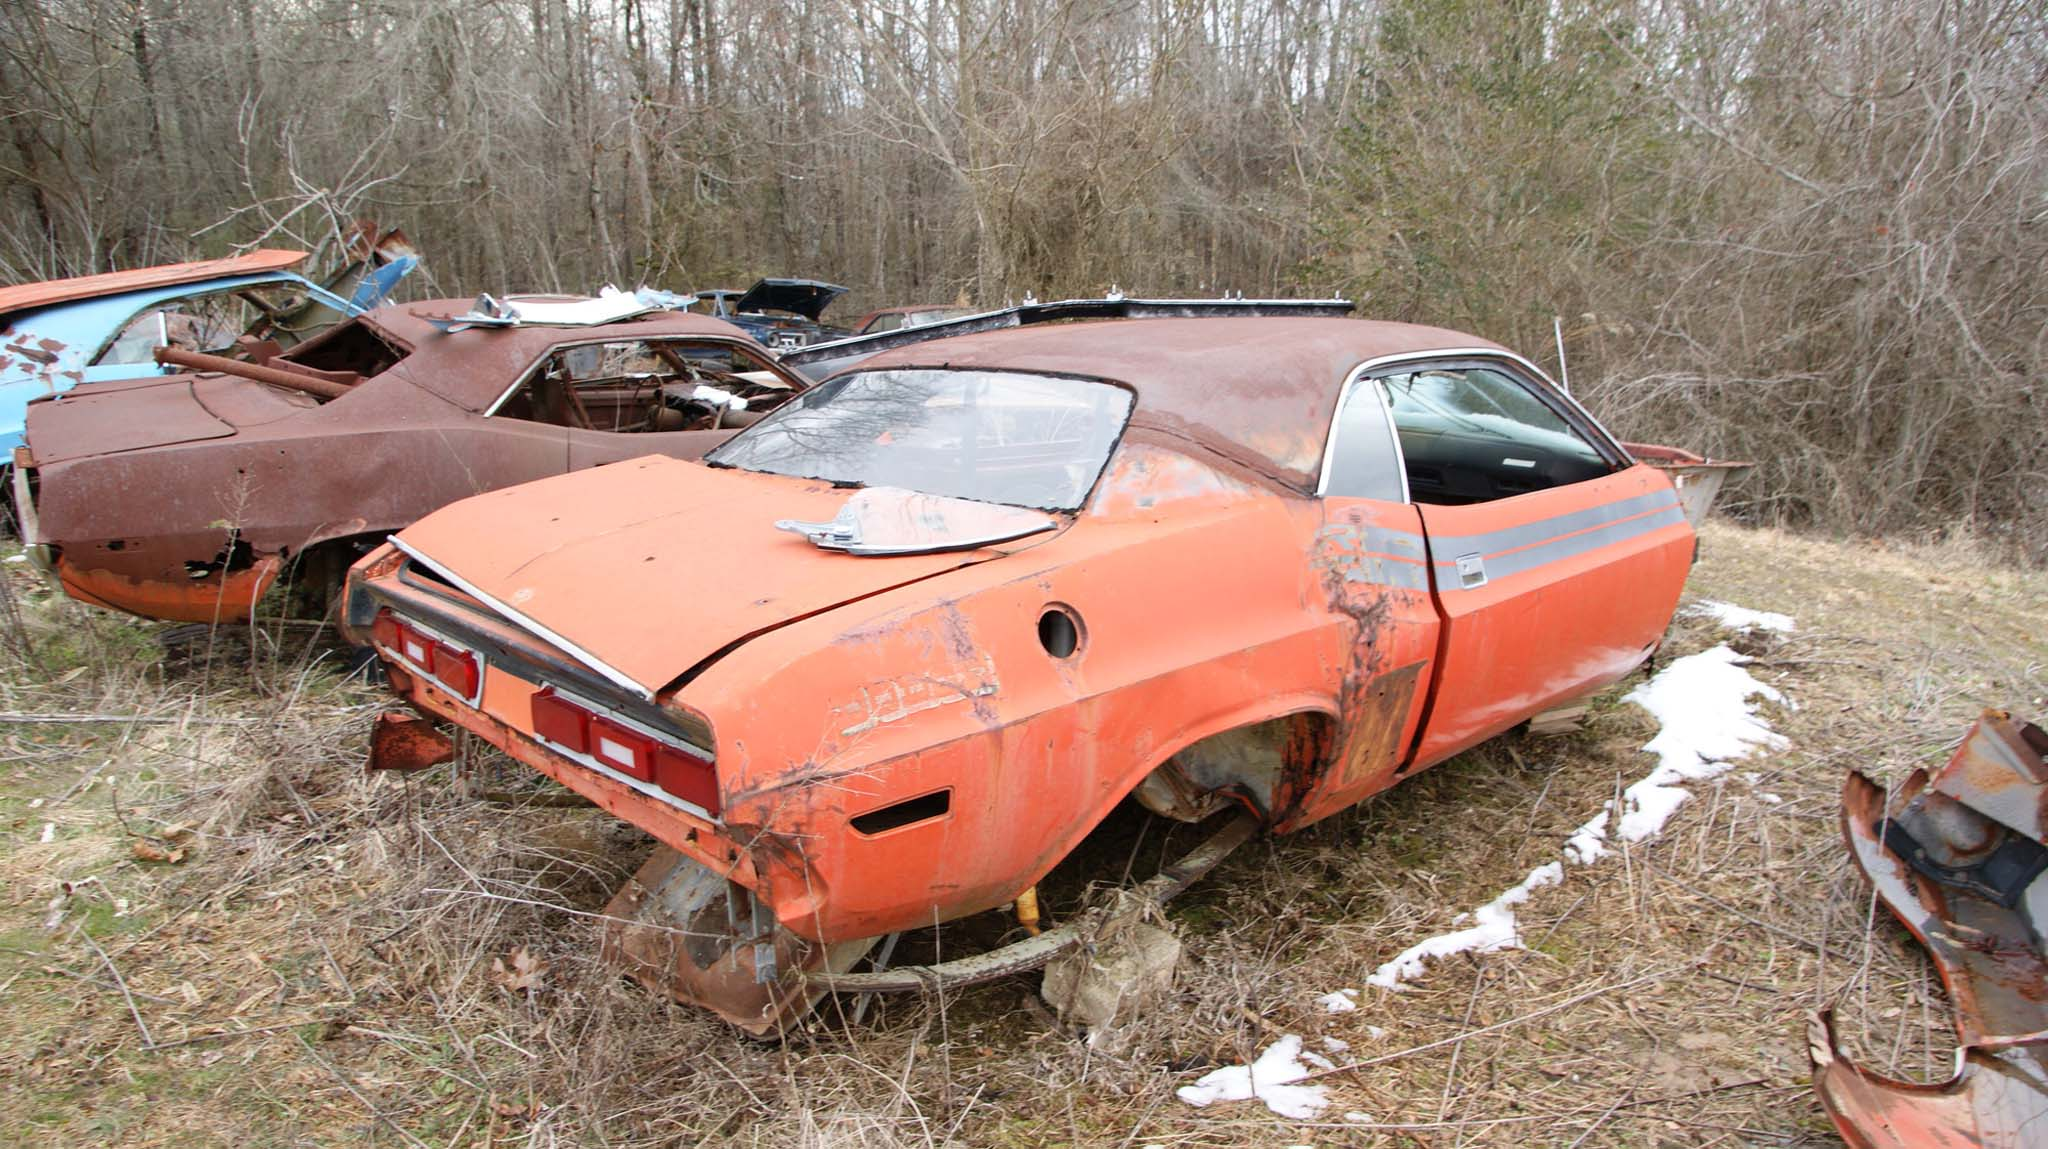 Most of this 1971 Challenger R/T is useable. The dash pad it still intact.